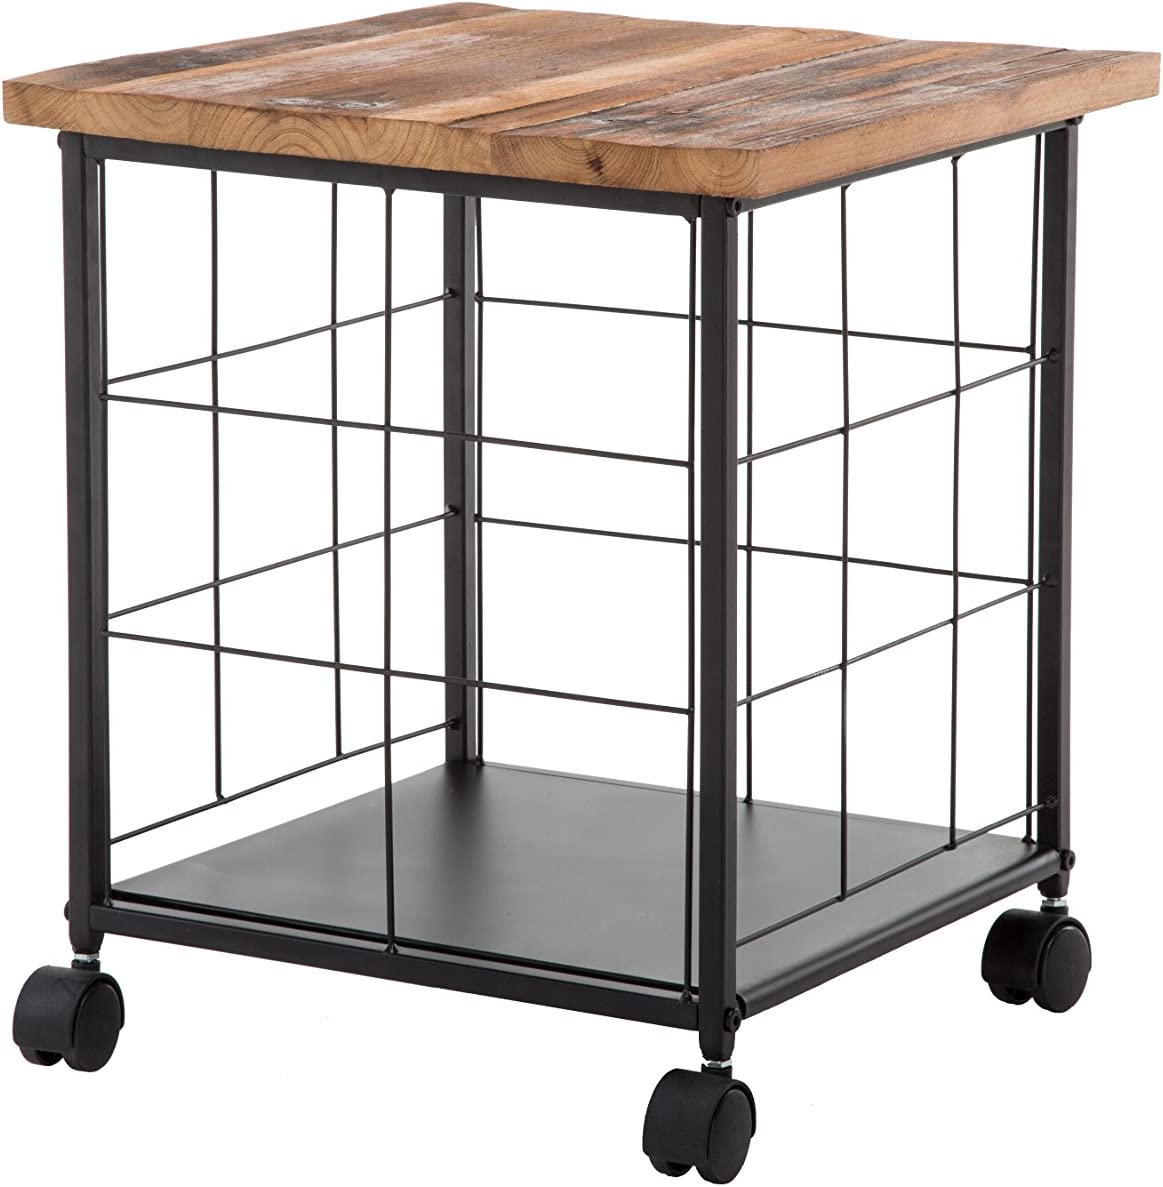 Belmont Home Fencott Reclaimed Rapid rise File Wood Super sale period limited Rolling Cabinet